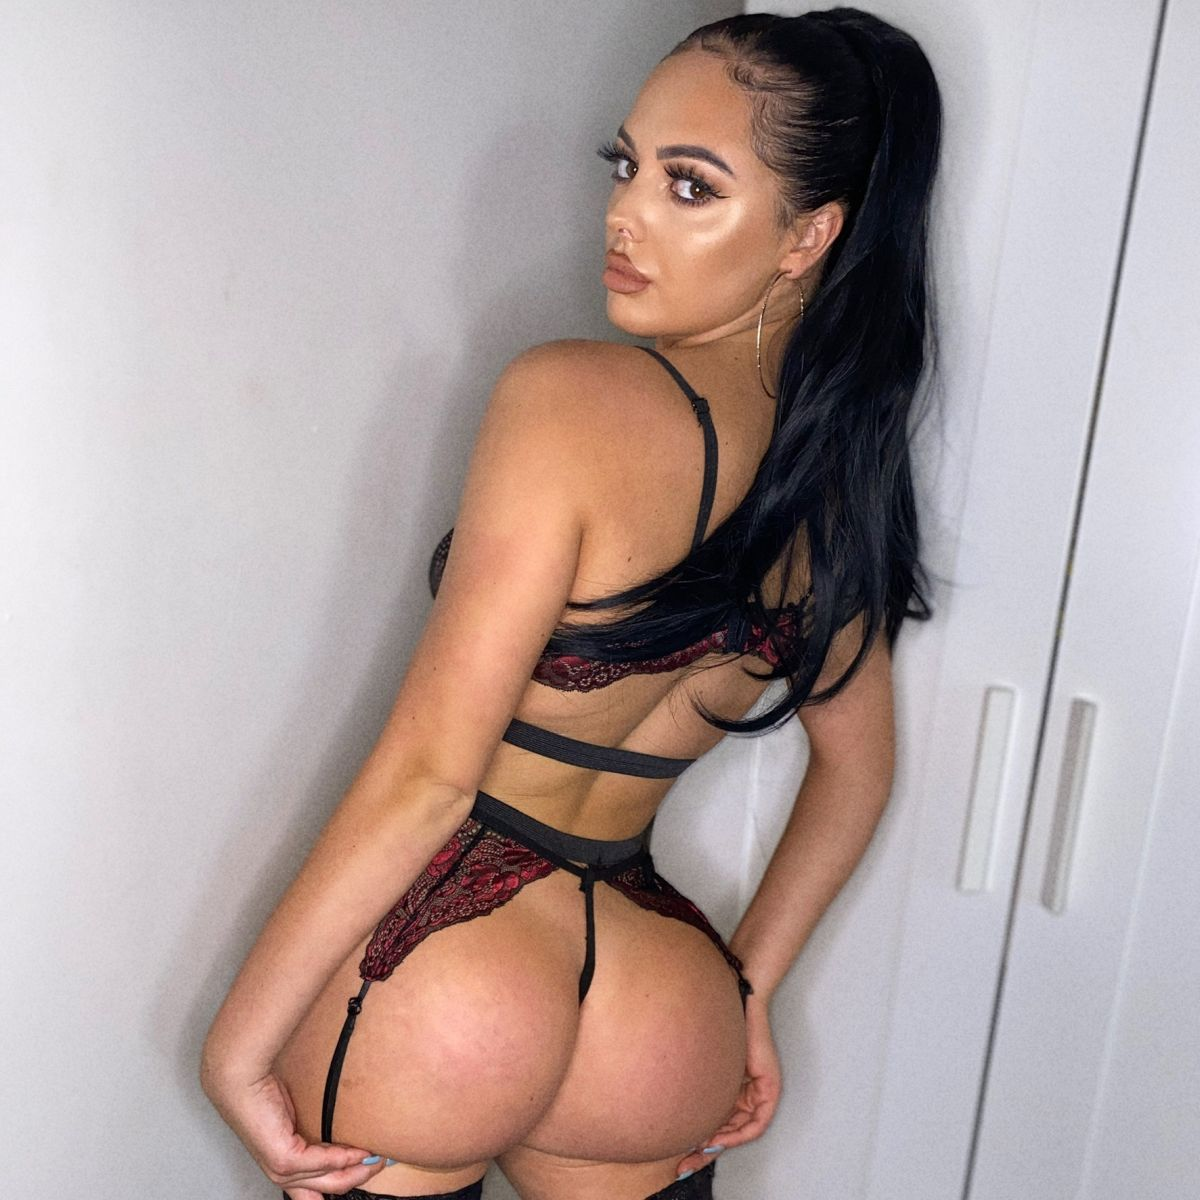 Free nudes of Chloe Leigh onlyfans leaked